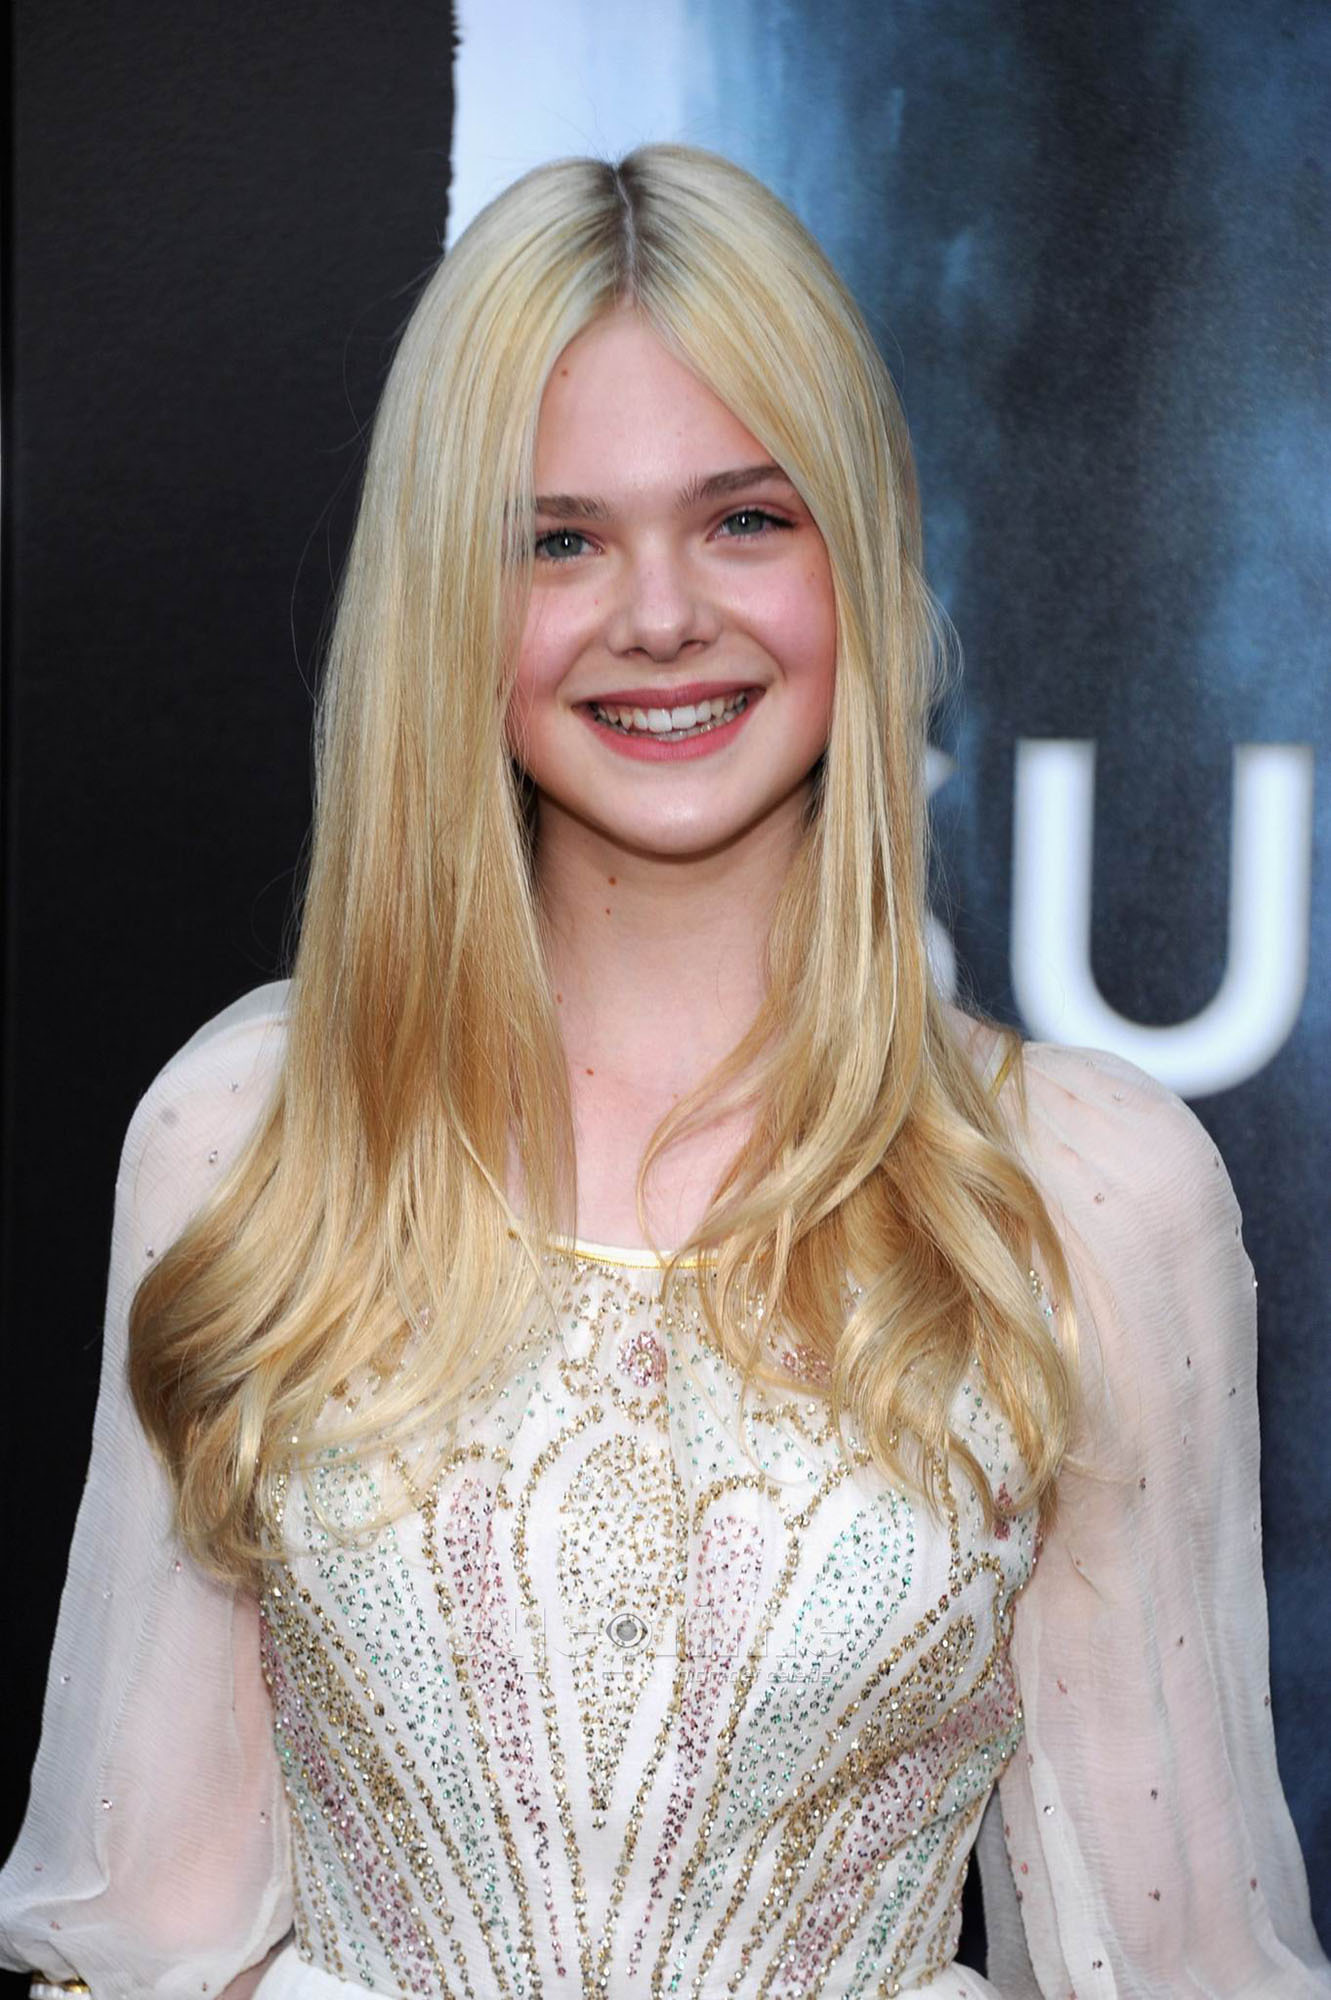 Elle Fanning HQ http://www.fanpop.com/clubs/elle-fanning/images/22726140/title/super-8-los-angeles-premiere-hq-photo